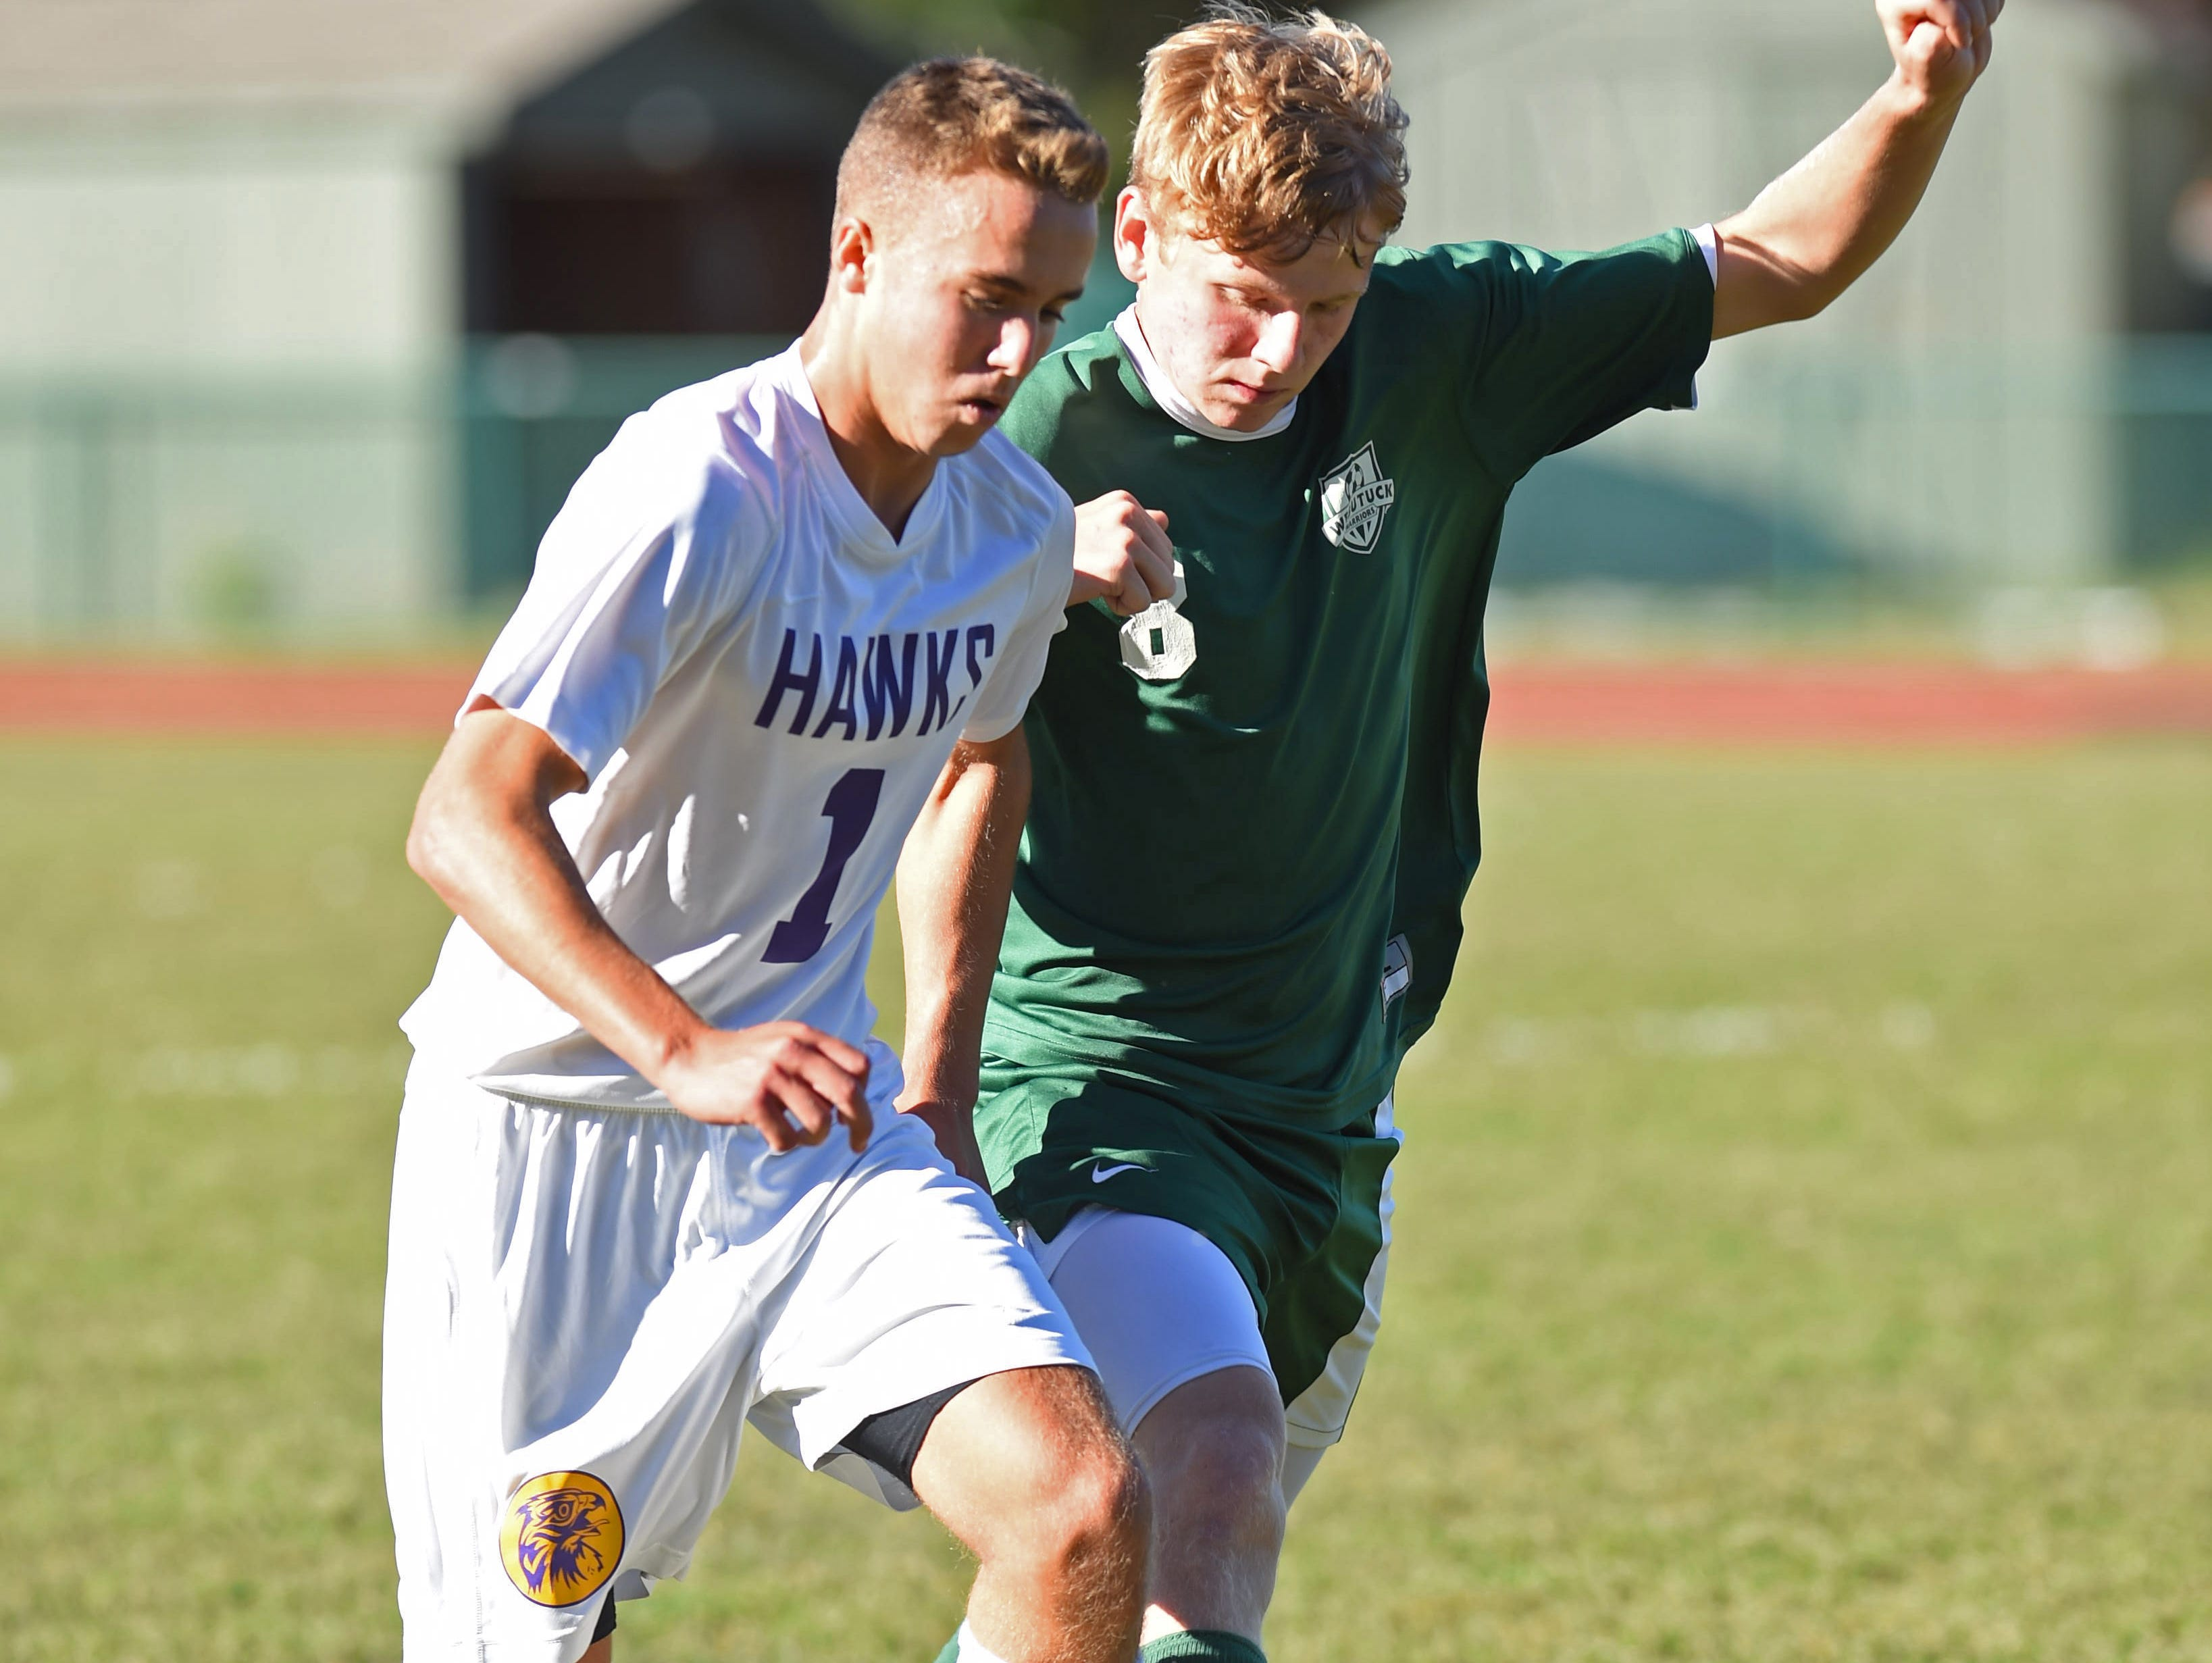 Rhinebeck's Quinn Graziano keeps ahead of Webutuck's Ethan Lounsbury during Thursday's 1-1 tie in Rhinebeck.